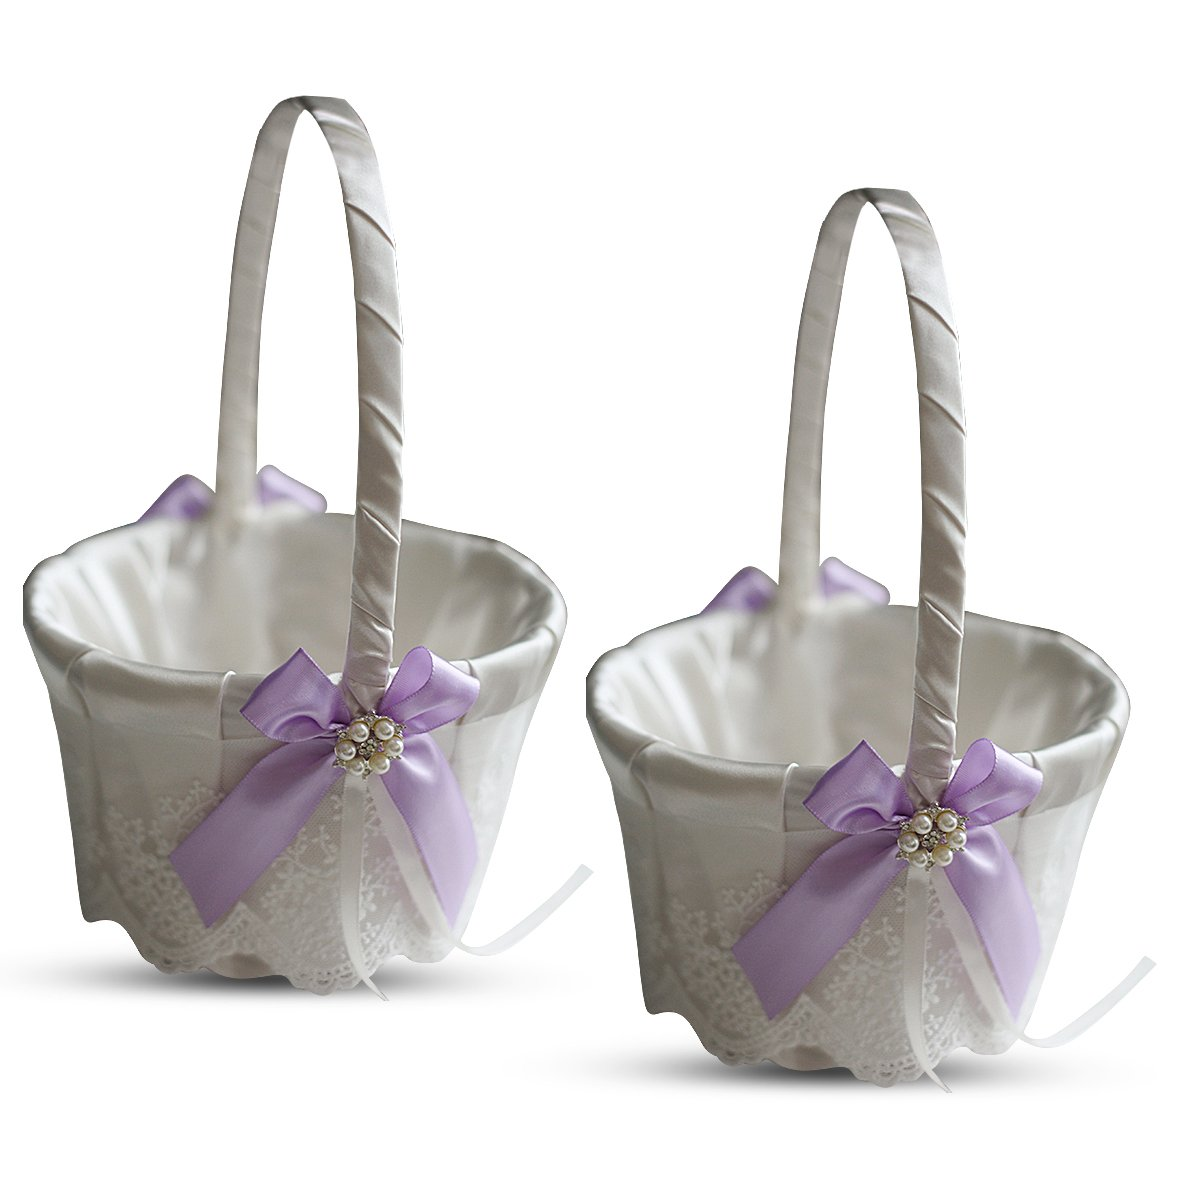 Roman Store Ivory Ring Bearer Pillow and Basket Set | Lace Collection | Flower Girl & Welcome Basket for Guest | Handmade Wedding Baskets & Pillows (Violet Lilac Lavender)